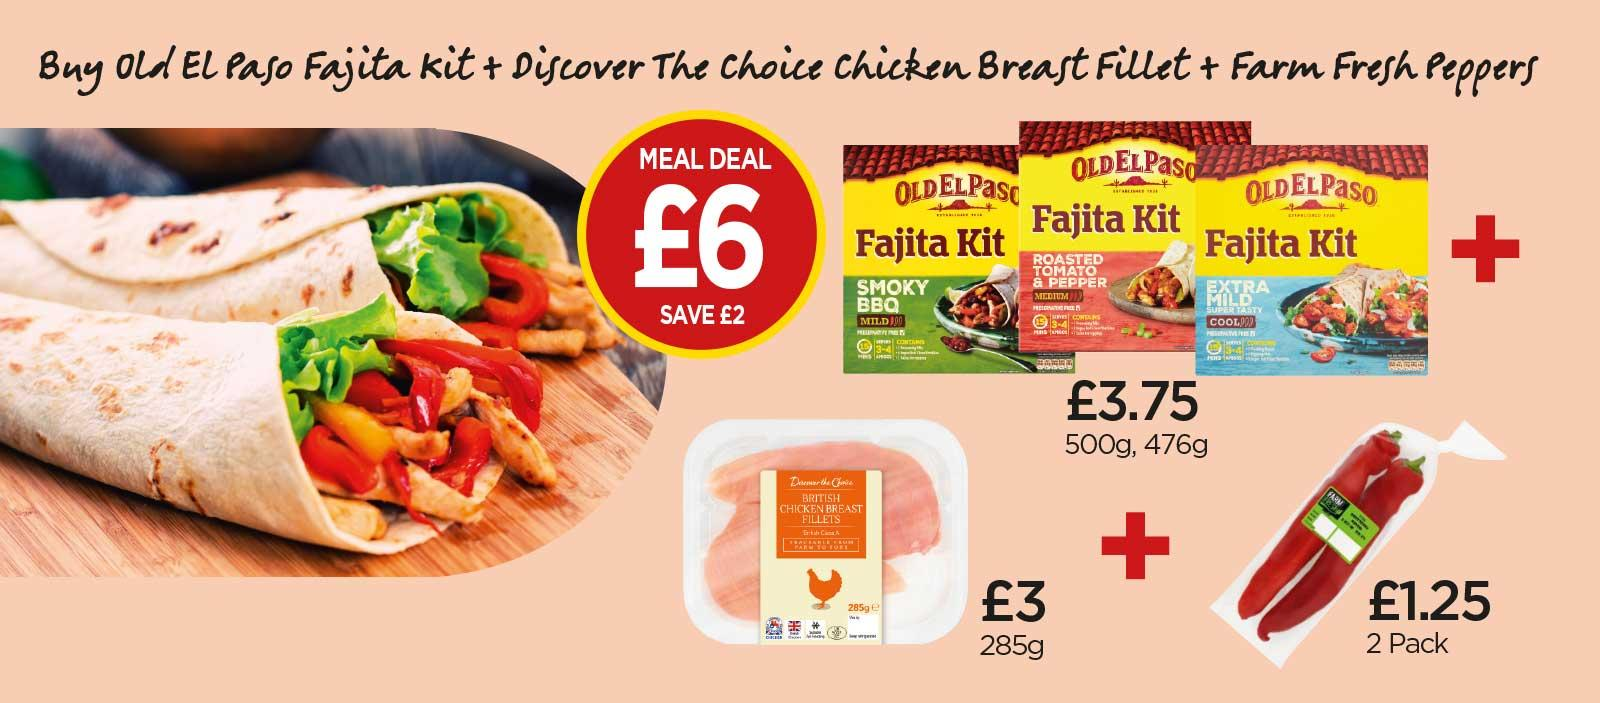 FAJITA MEAL DEAL: Old El Paso Smokey BBQ Fajita Kit, Roasted Tomato & Pepper Fajita Kit, Mild Fajita Kit, Farm Fresh Sweet Pointed Pepper, Discover The Choice Chicken Breast Fillets - £6 at Budgens